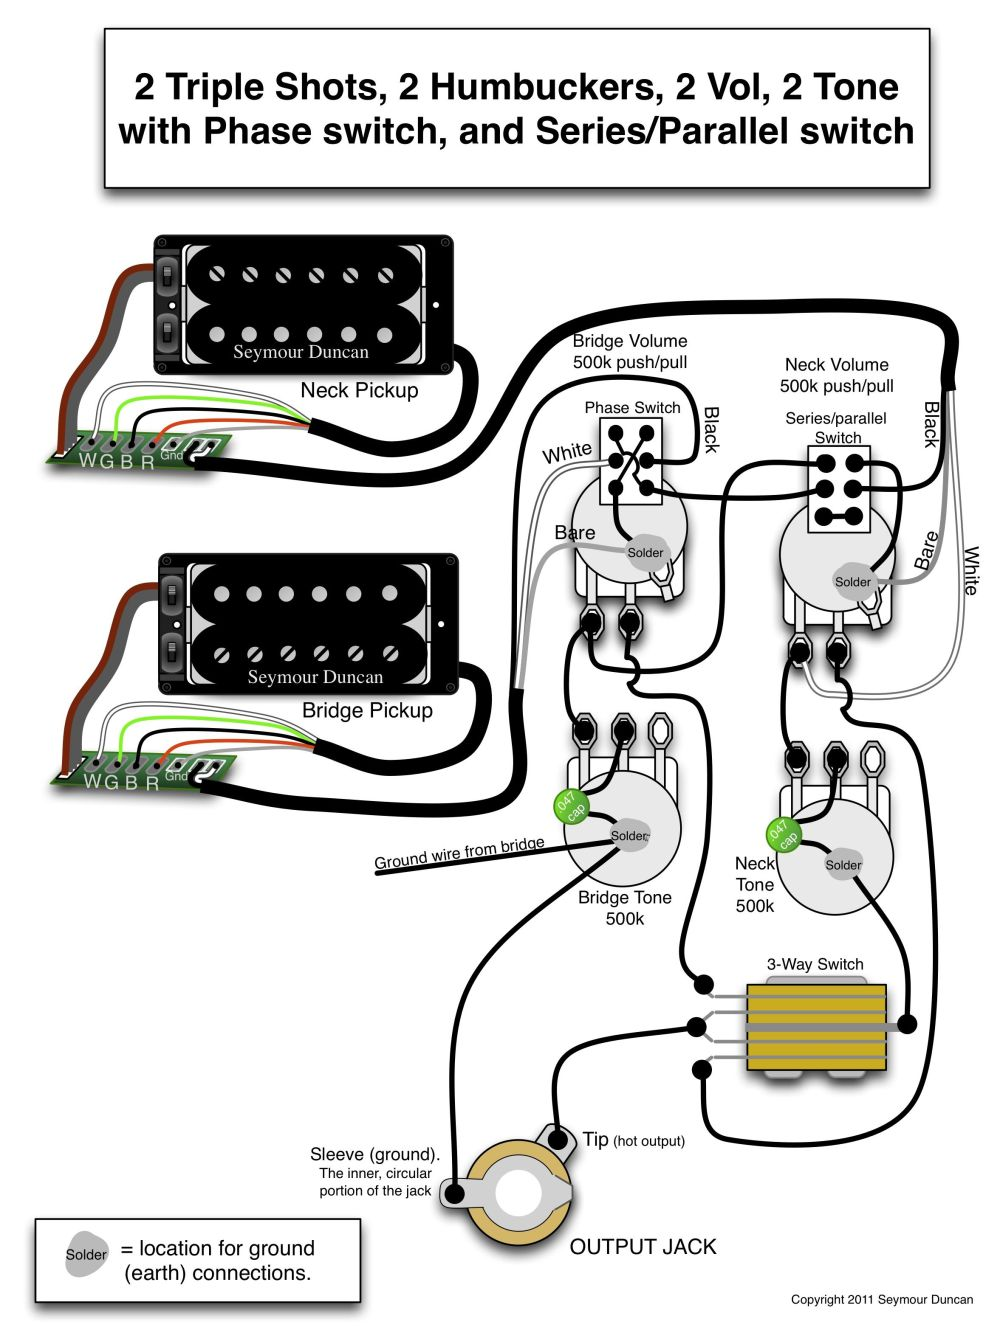 medium resolution of seymour duncan wiring diagram 2 triple shots humbuckers wiring diagram for you